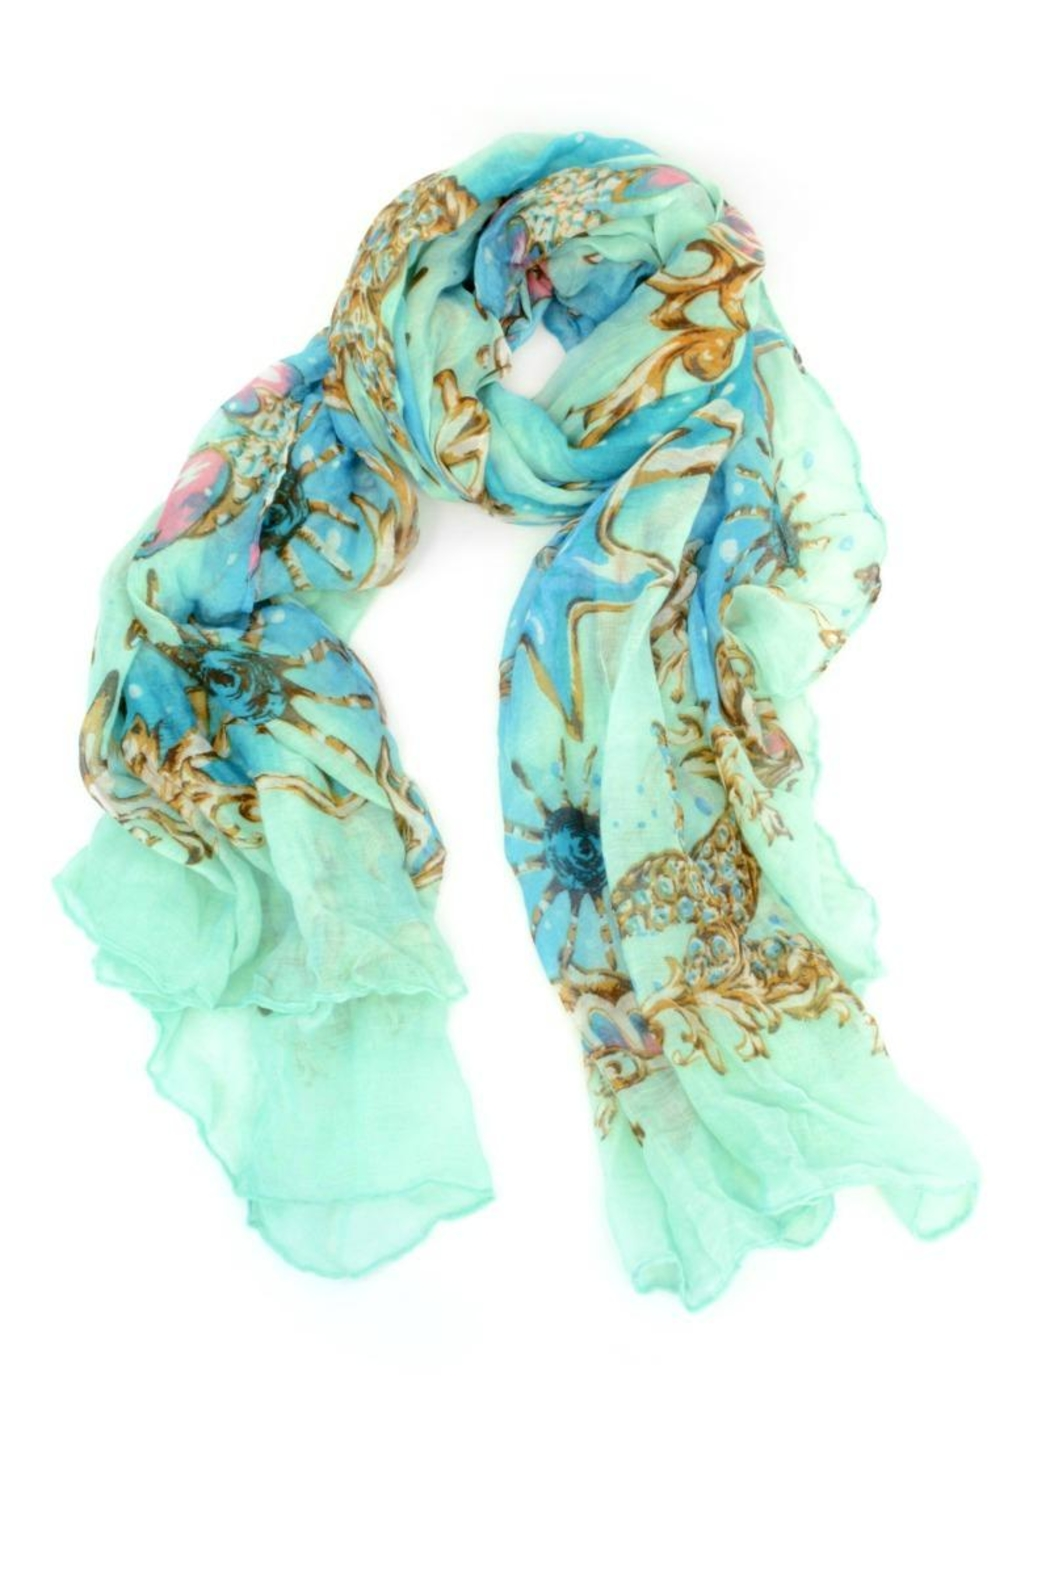 Joy Susan Accessories Sea Creature Scarf - Main Image